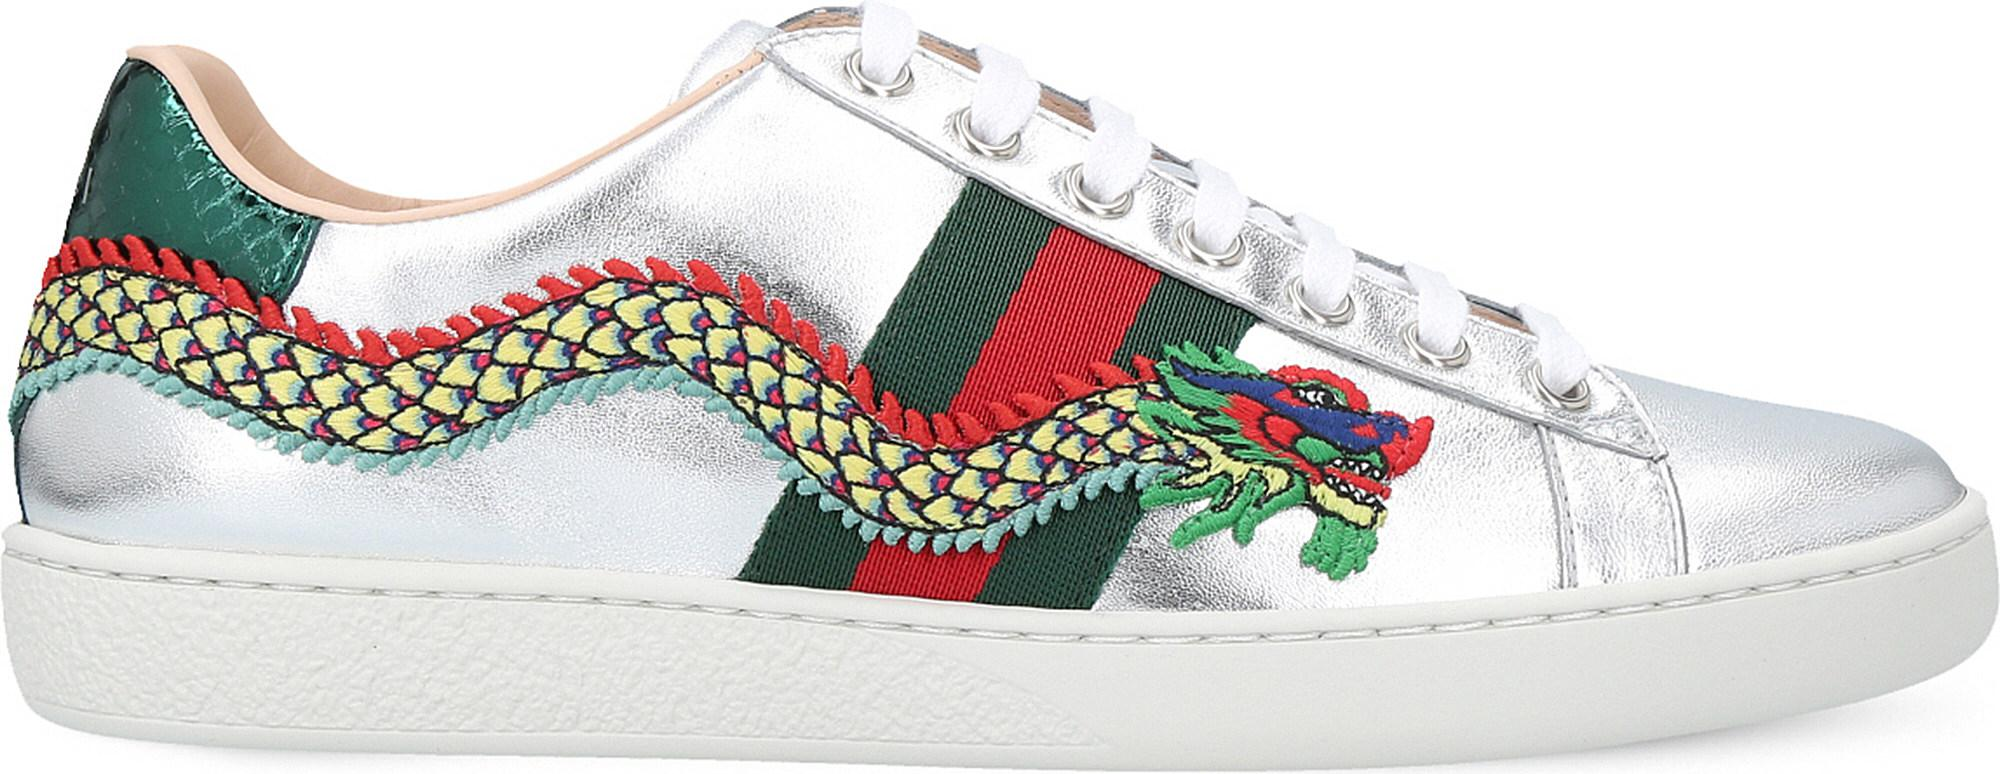 Ace Dragon-embellished Leather Trainers